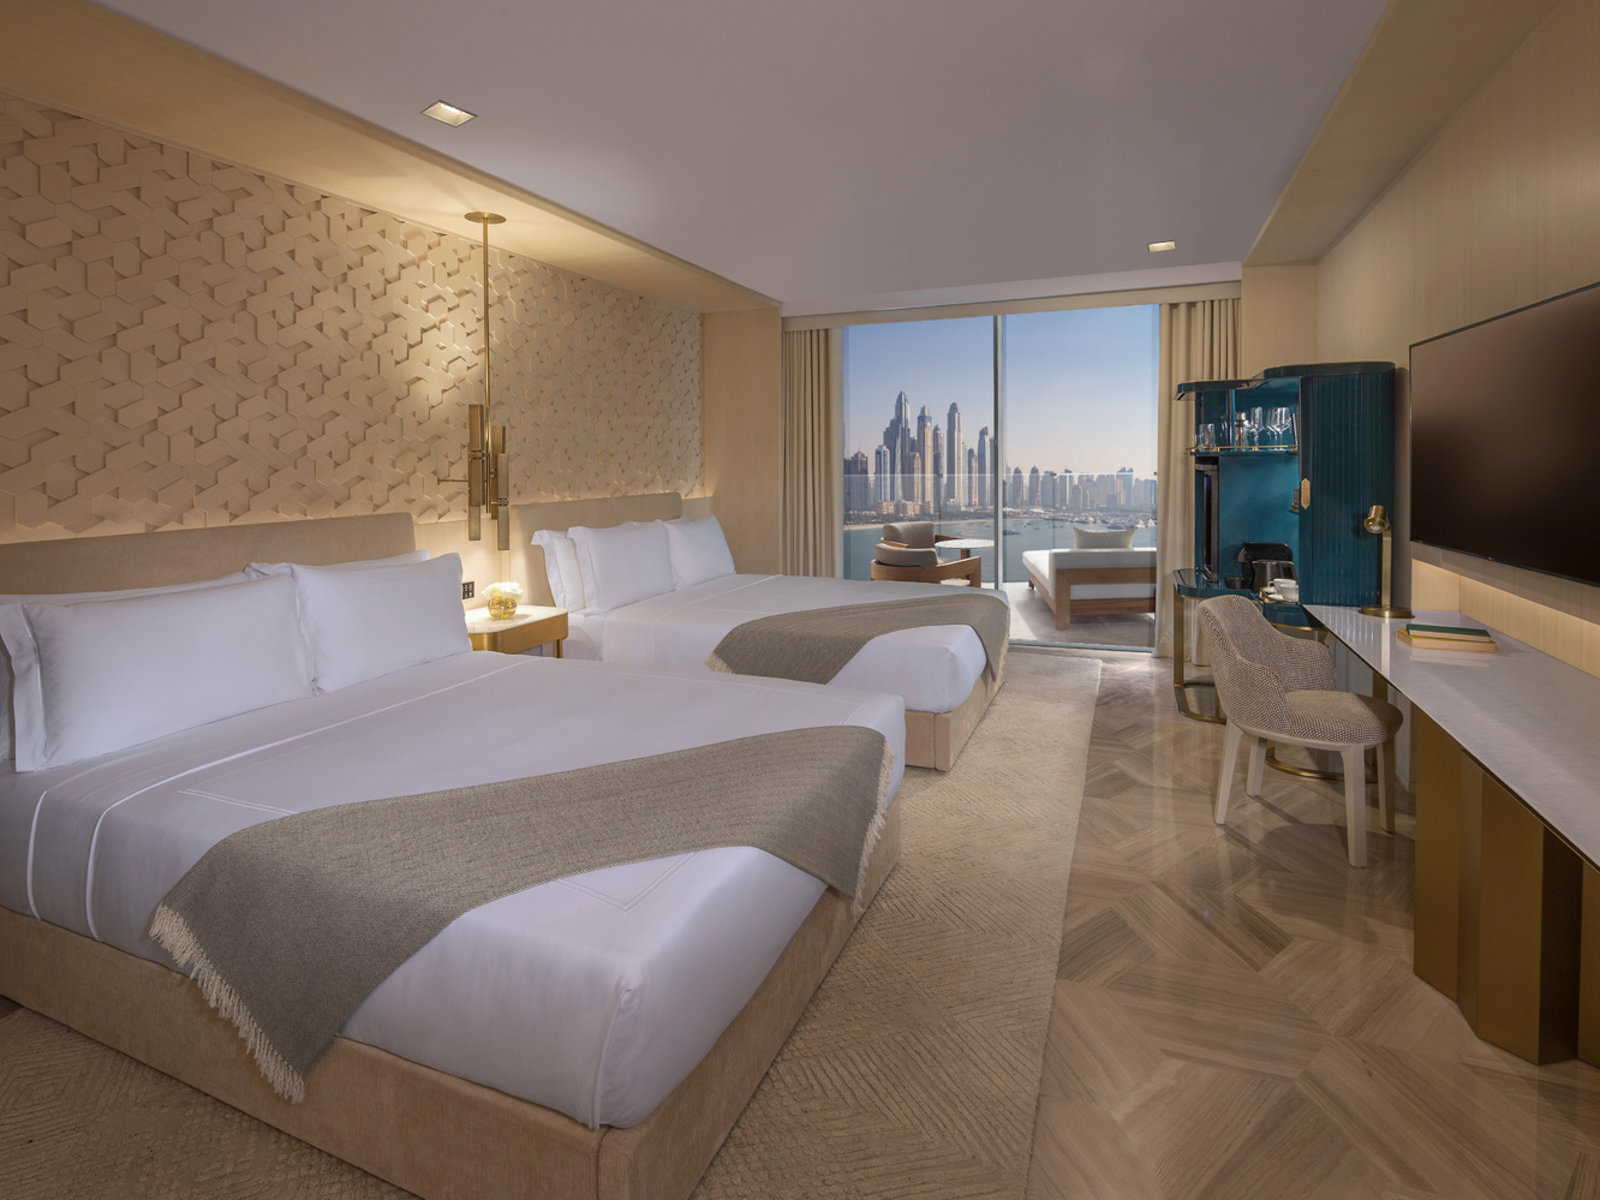 Wohnbeispiel Luxe Sea Double Queen Room